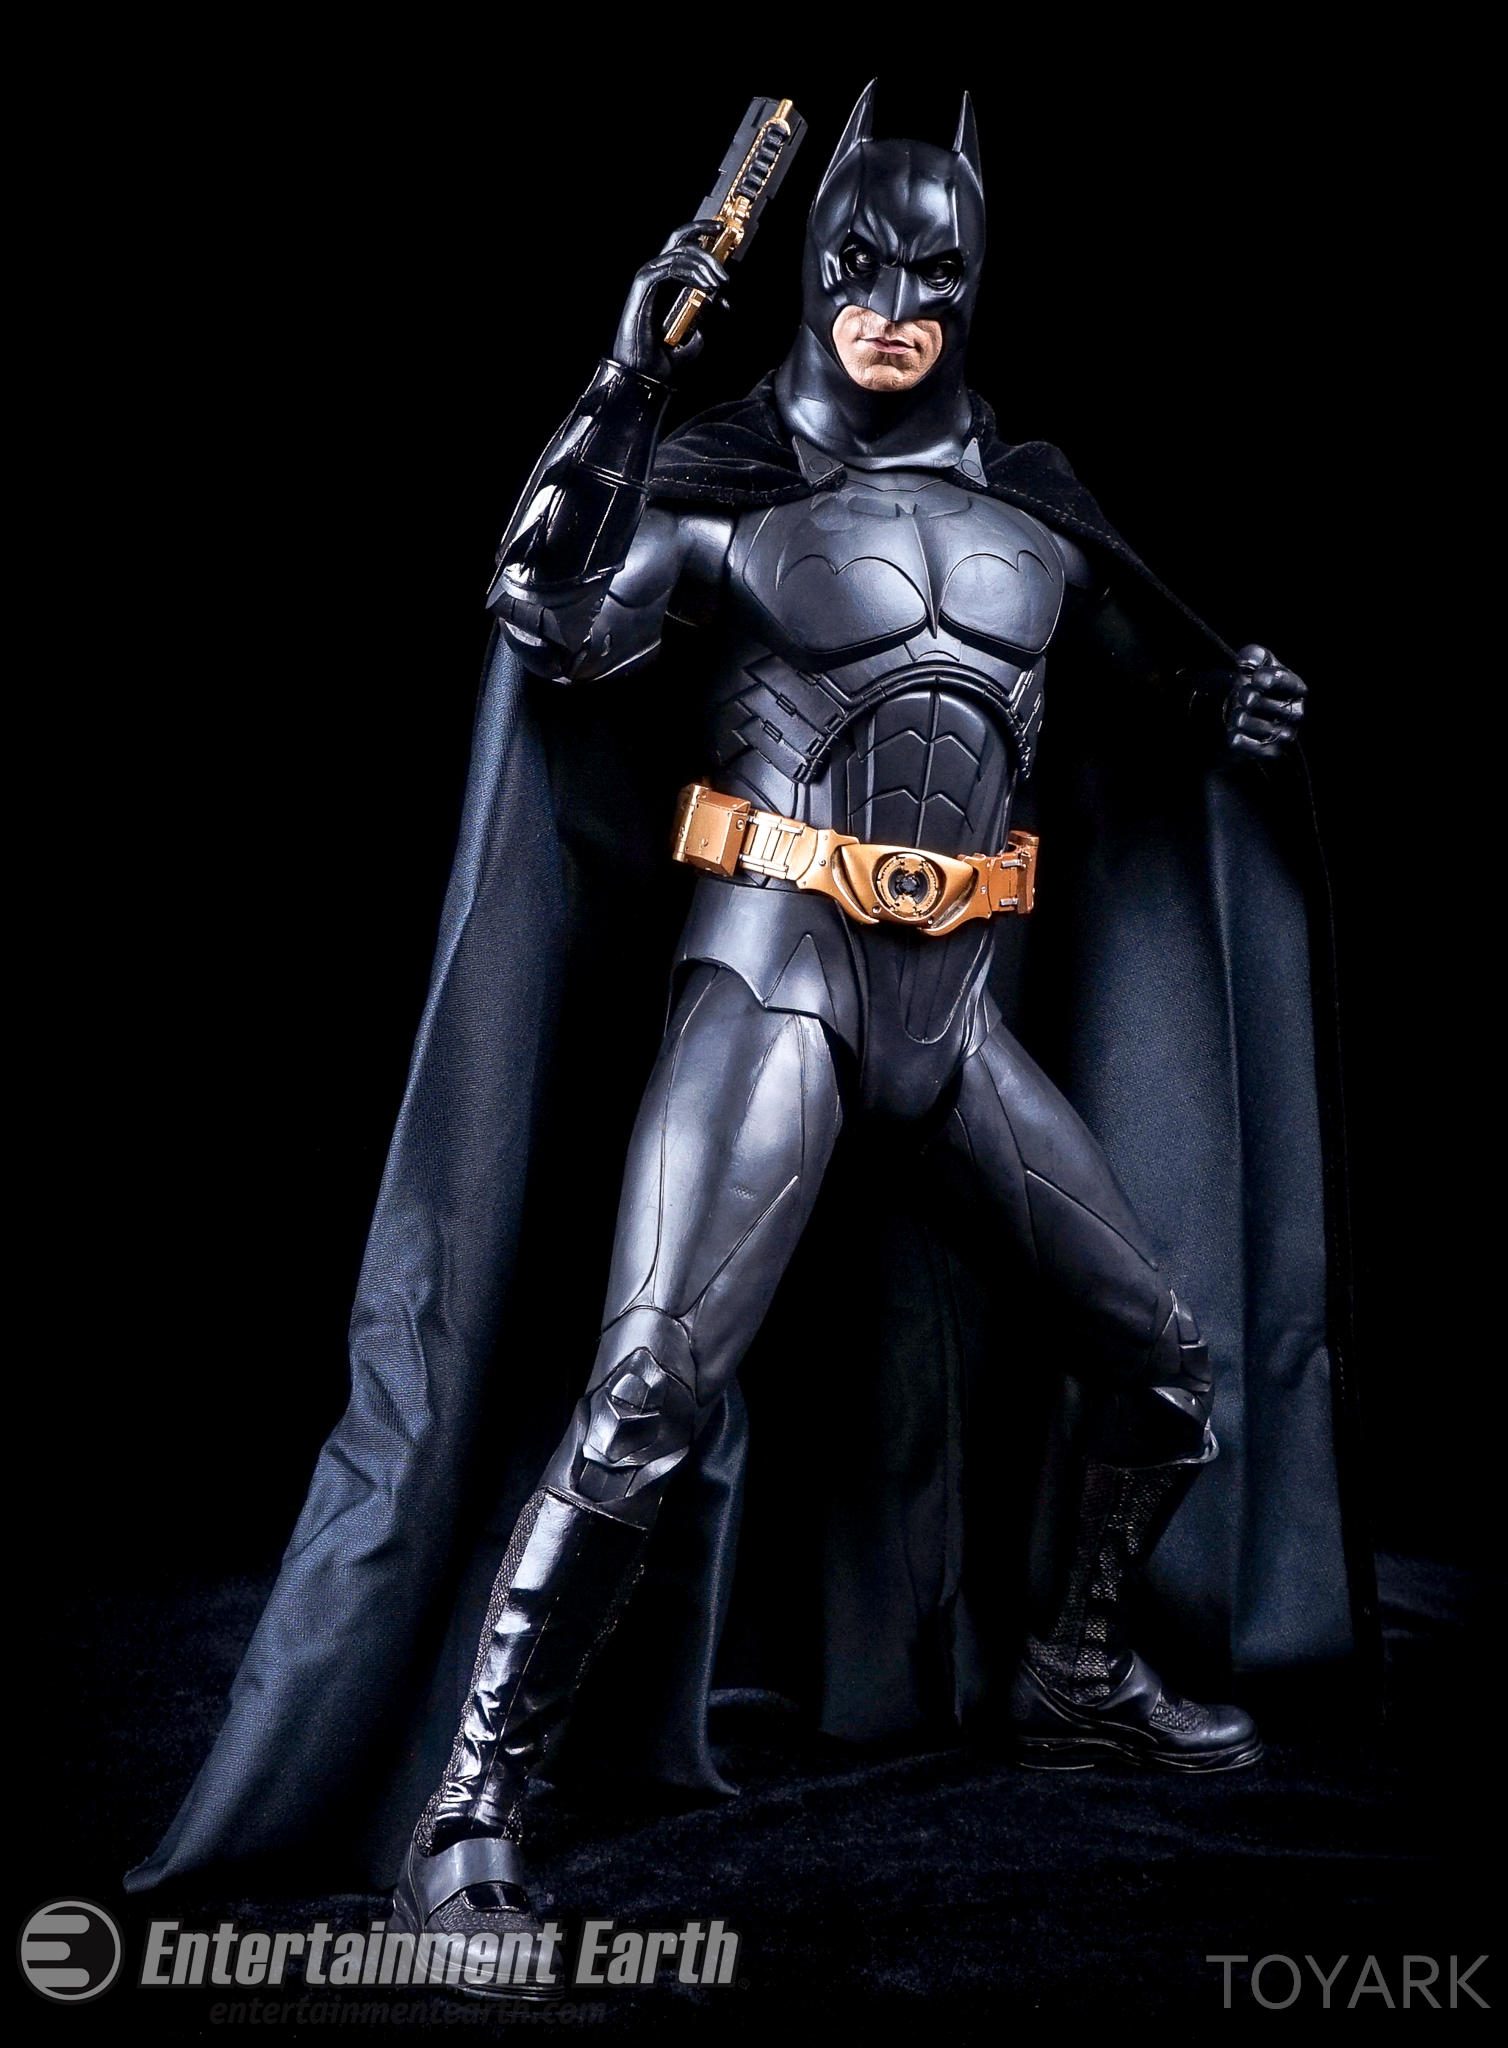 http://news.toyark.com/wp-content/uploads/sites/4/2016/07/NECA-Batman-Begins-036.jpg